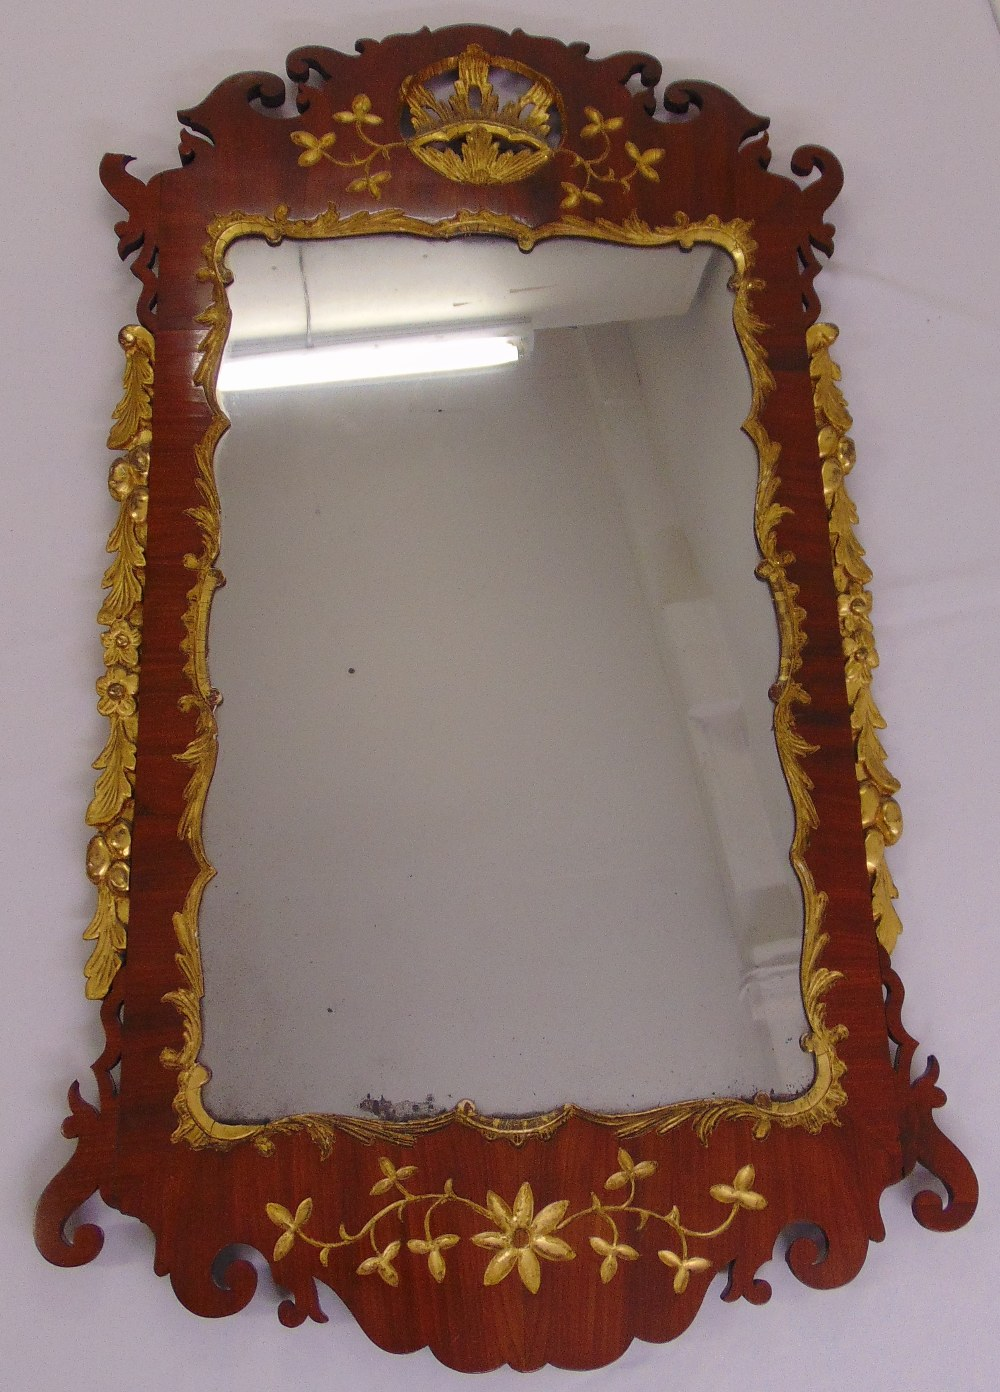 Lot 53 - A Regency style rectangular mahogany and gilt carved fretwork wall mirror, 120 x 69cm